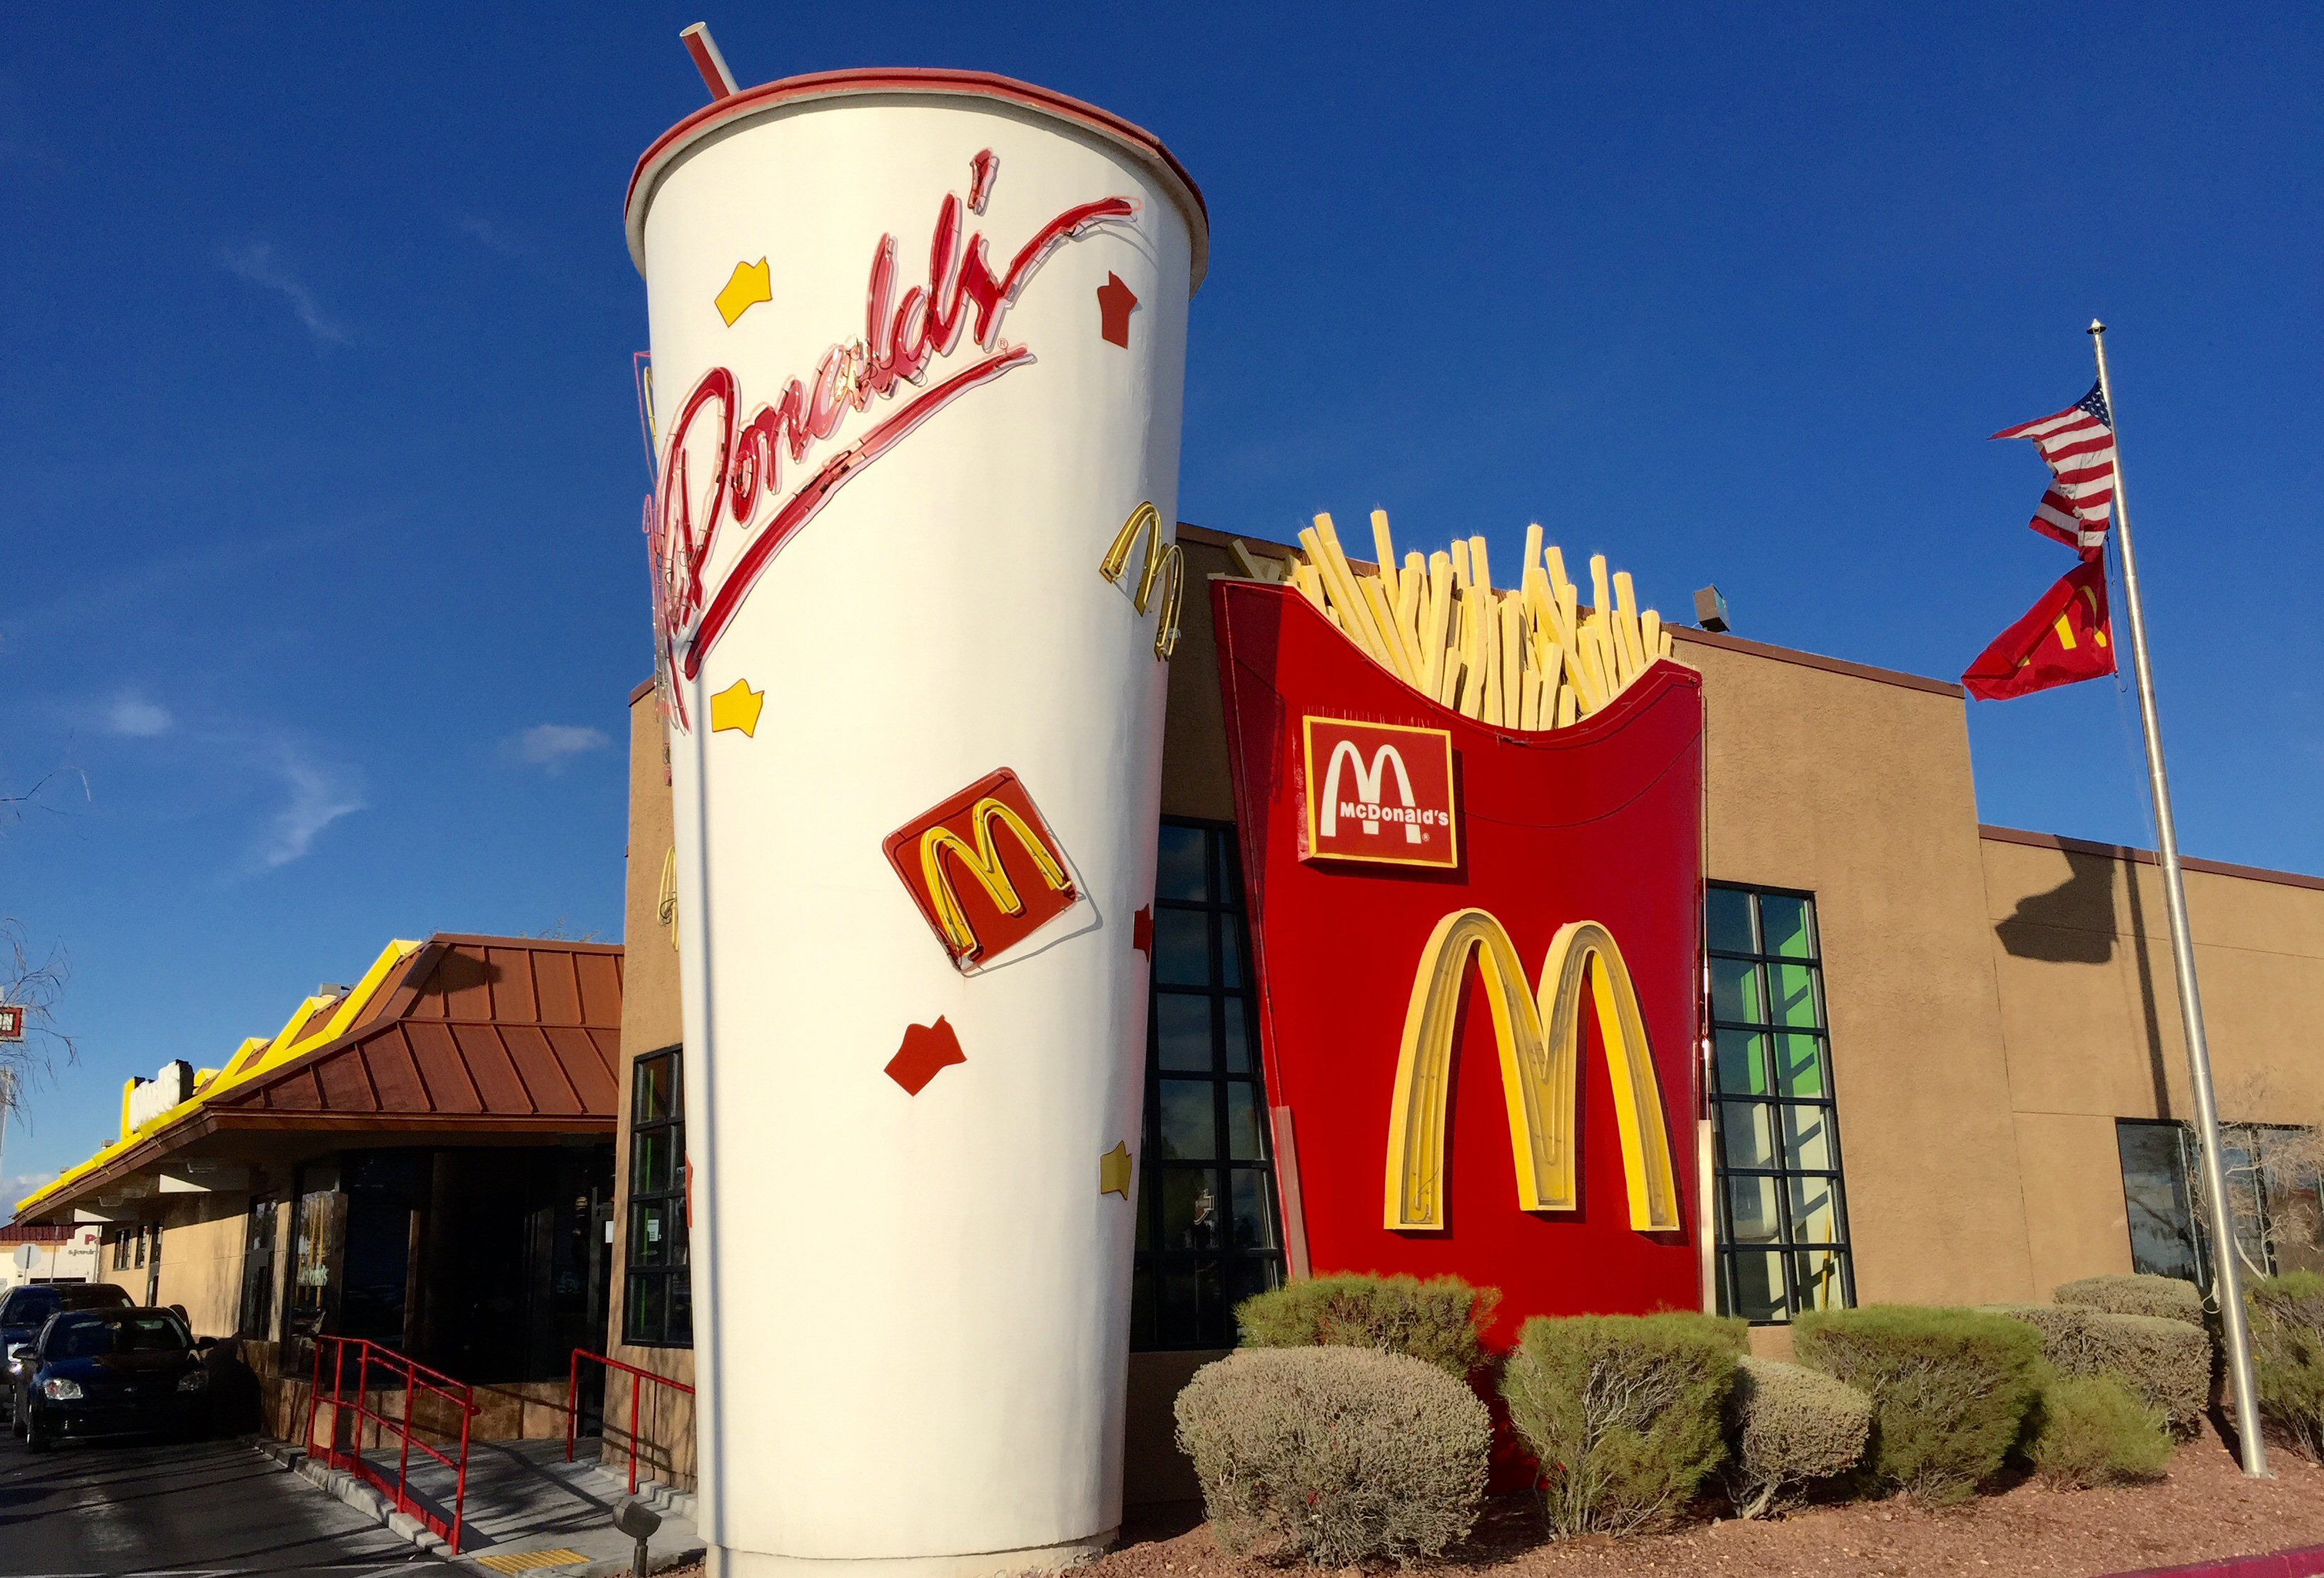 McDonald's restaurant with a huge soda and fries built into the facade